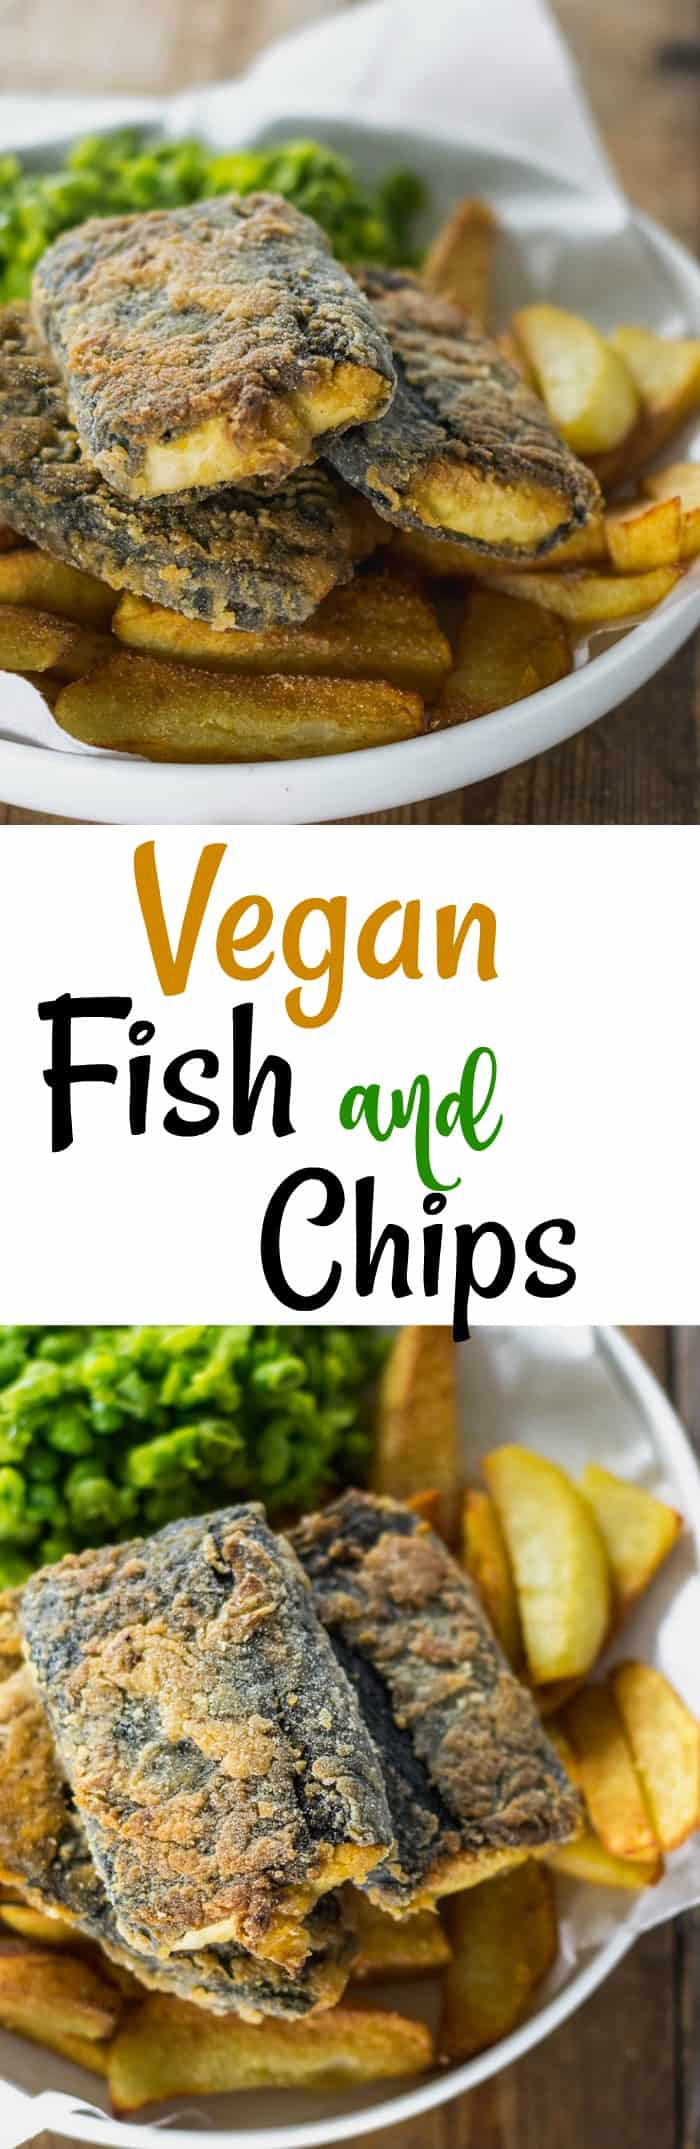 Vegan Fish and Chips Pin